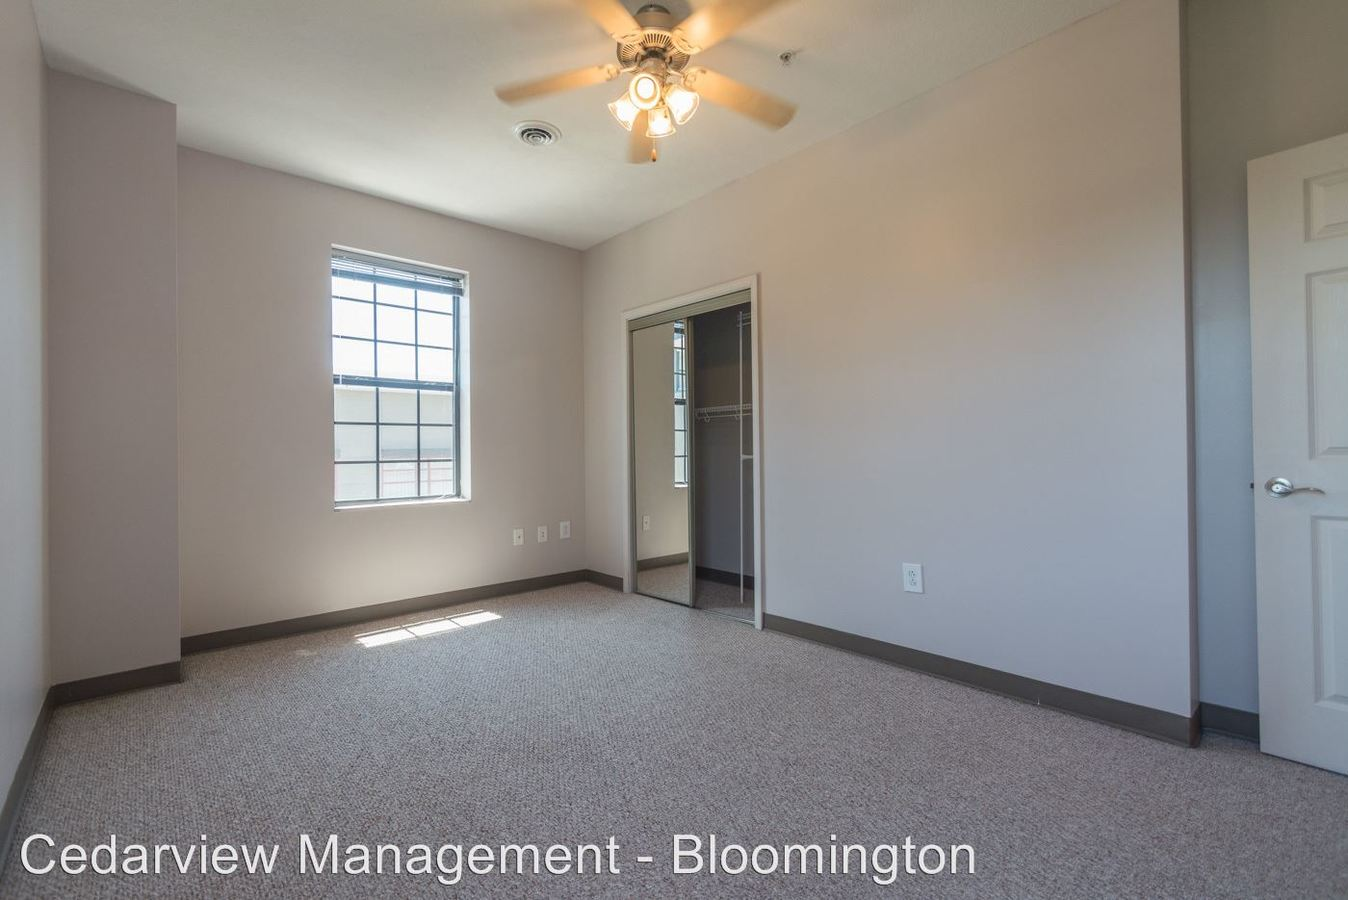 2 Bedrooms 2 Bathrooms Apartment for rent at 601 N. College Ave. Tenth & College in Bloomington, IN